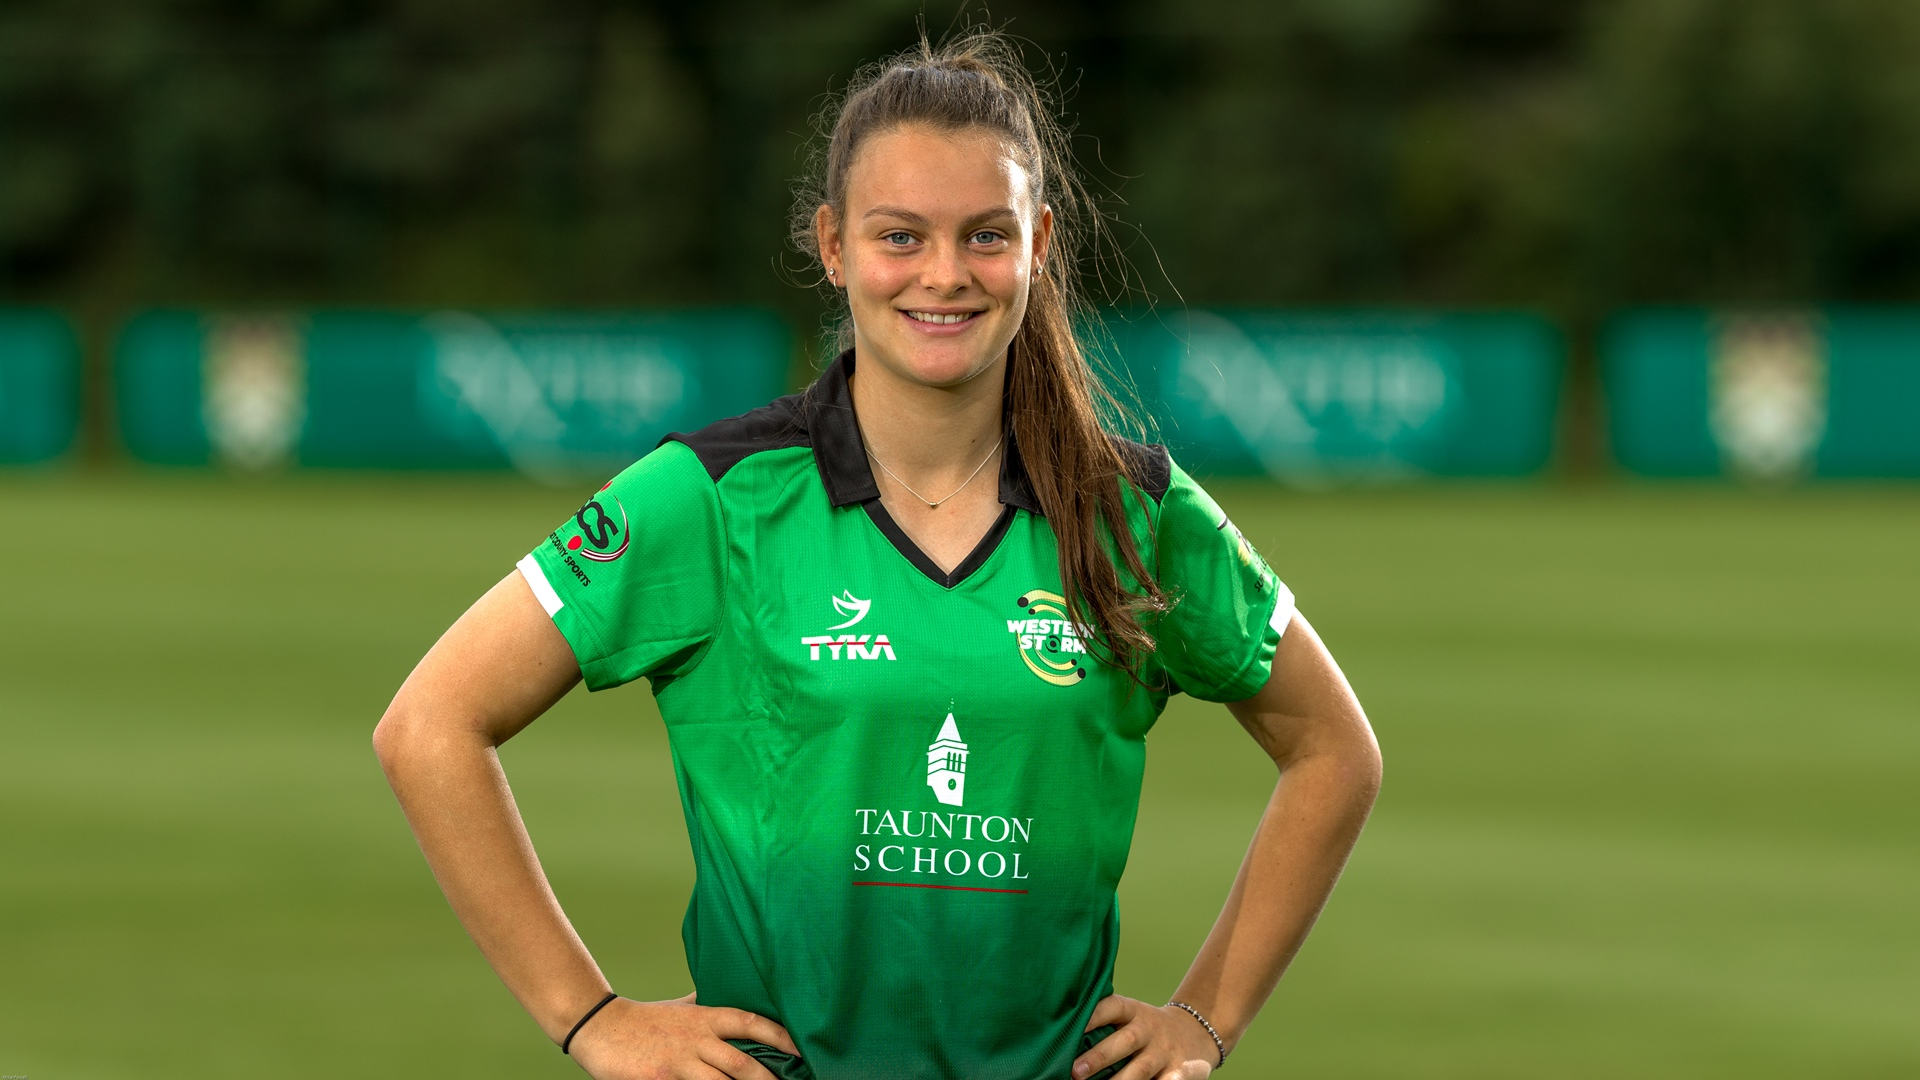 Gibson named in England Women's Academy squad